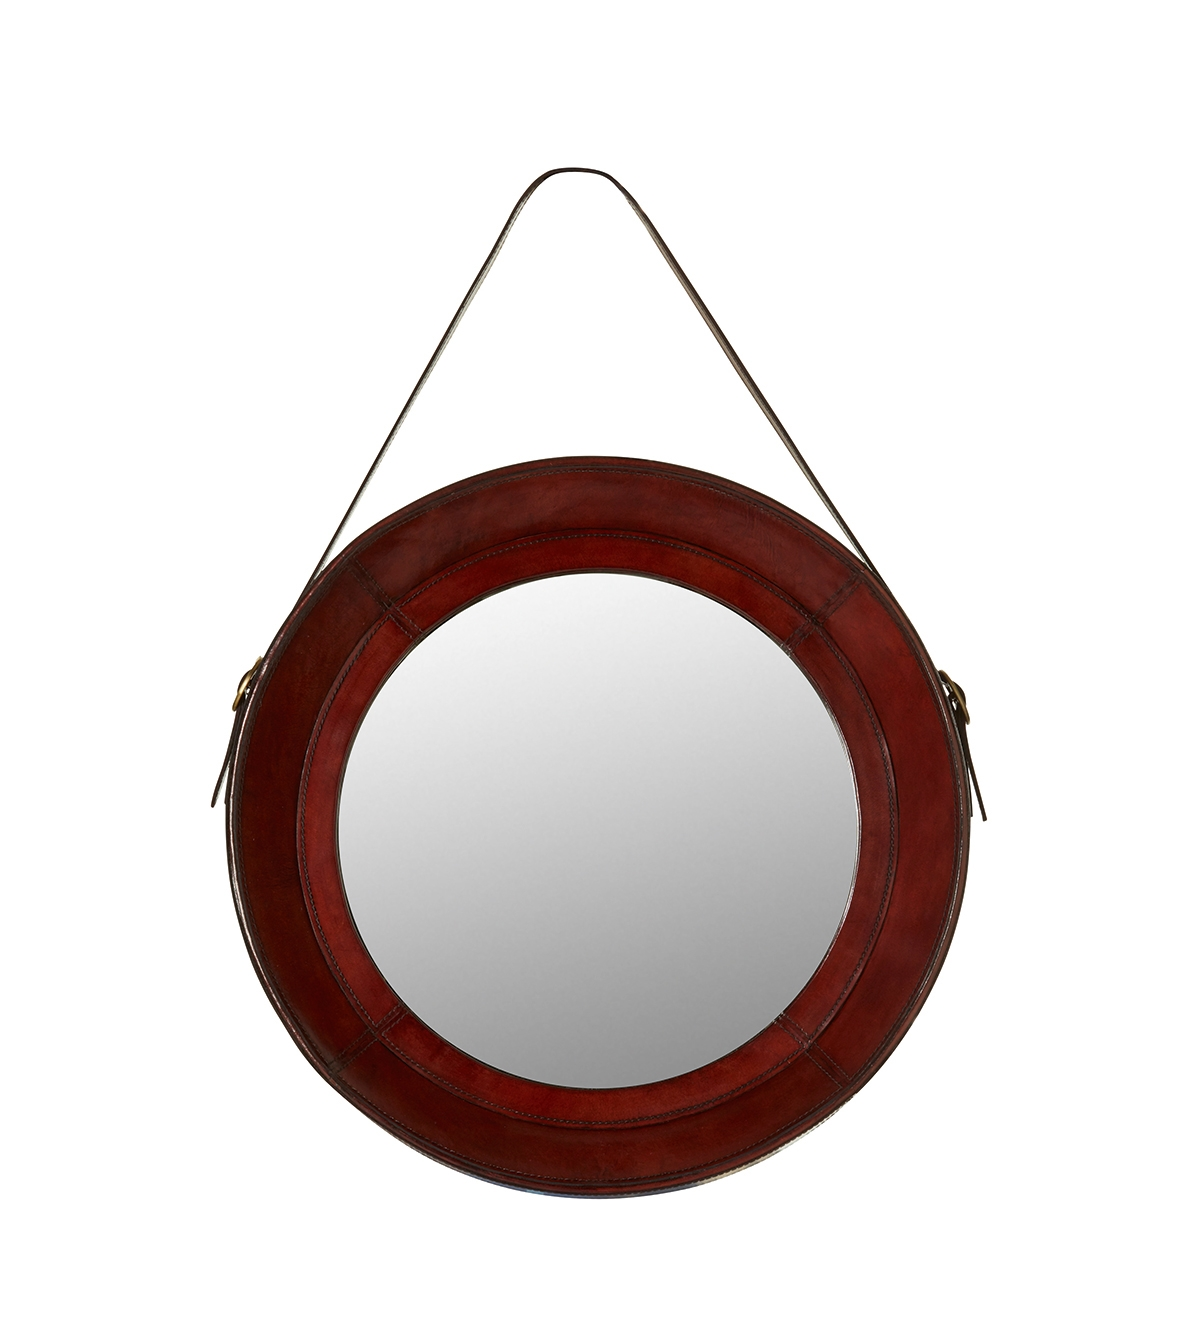 Saddle Leather Round Mirror Oka Pertaining To Leather Round Mirror (Image 13 of 15)